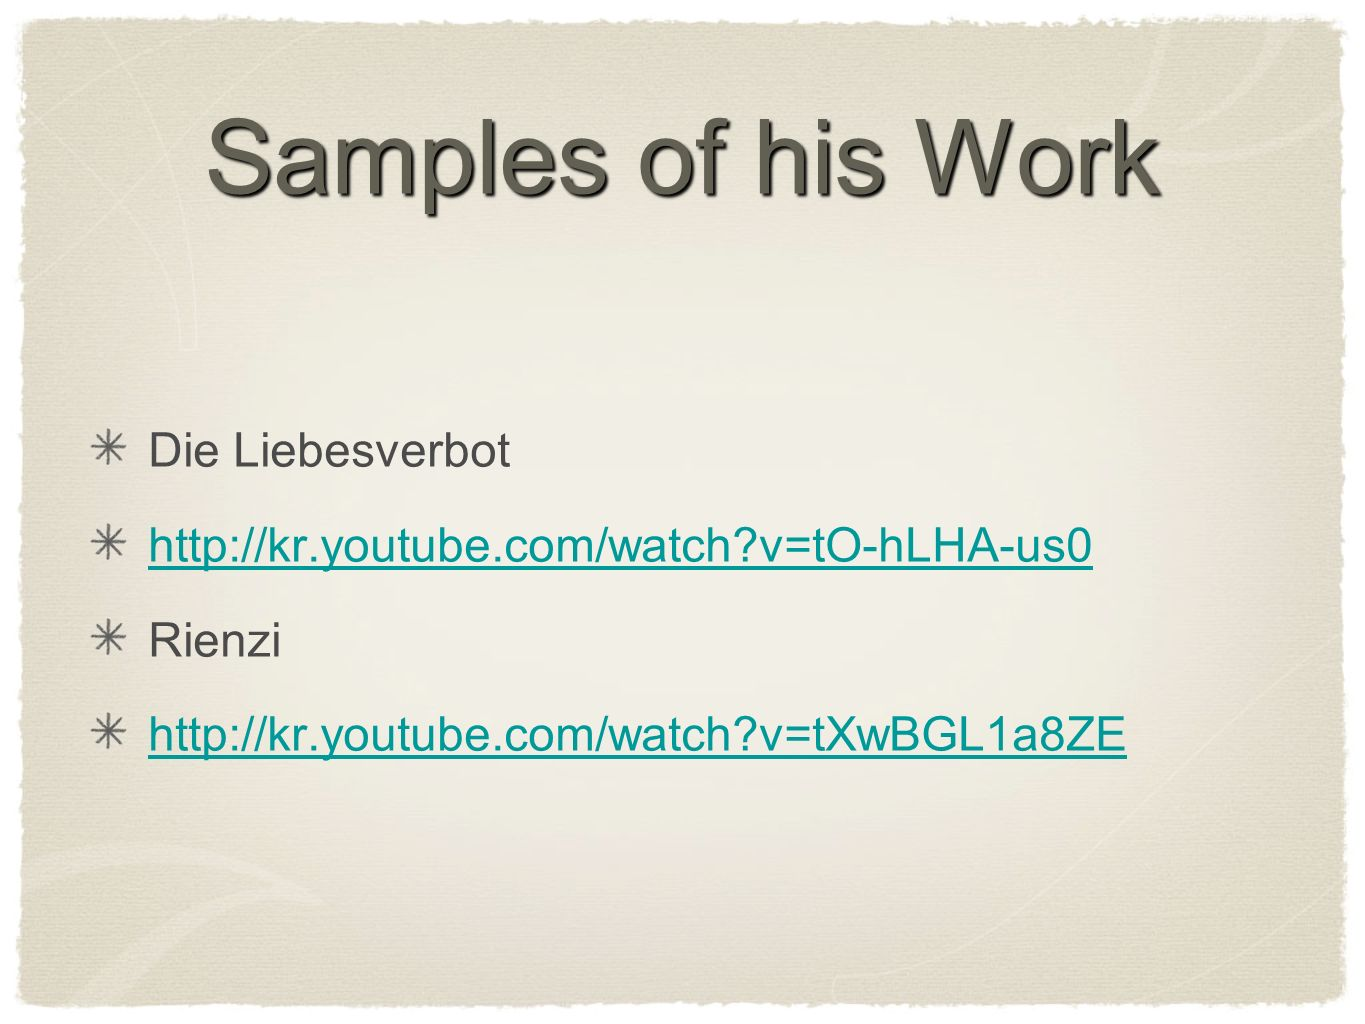 Samples of his Work Die Liebesverbot   v=tO-hLHA-us0 Rienzi   v=tXwBGL1a8ZE